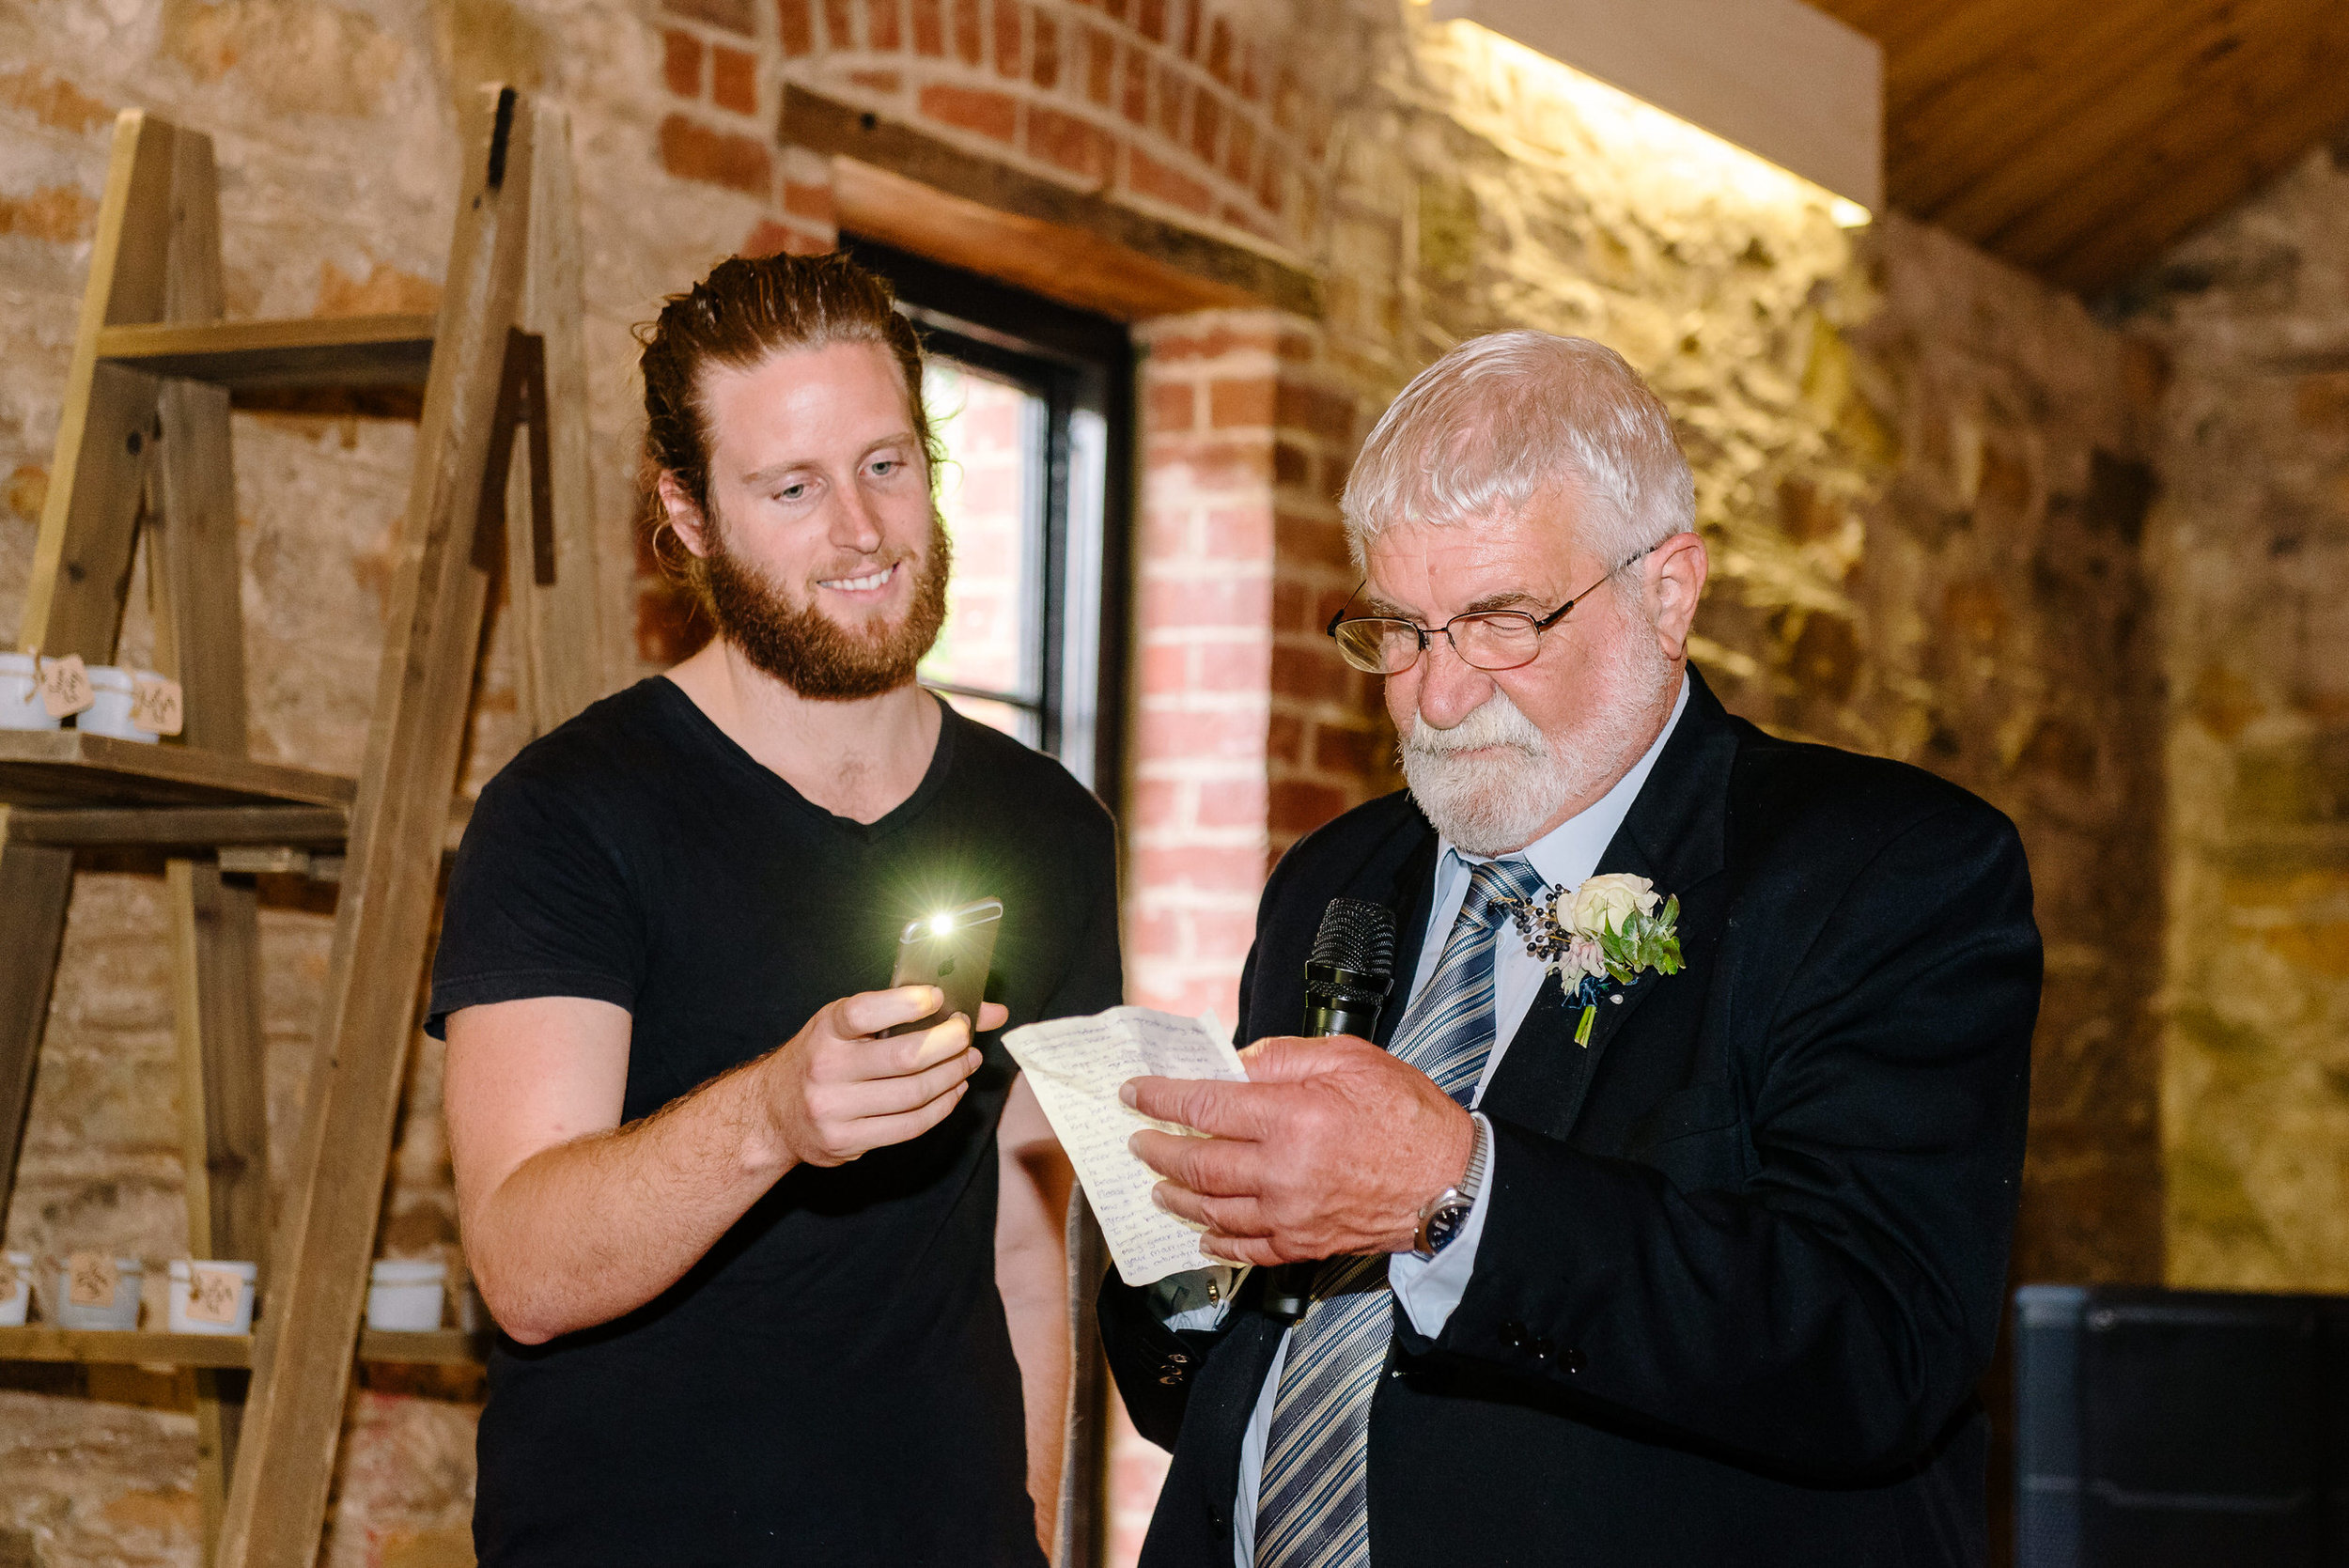 Chateau_Dore_Wedding_Photography_Justin_and_Jim-221.JPG